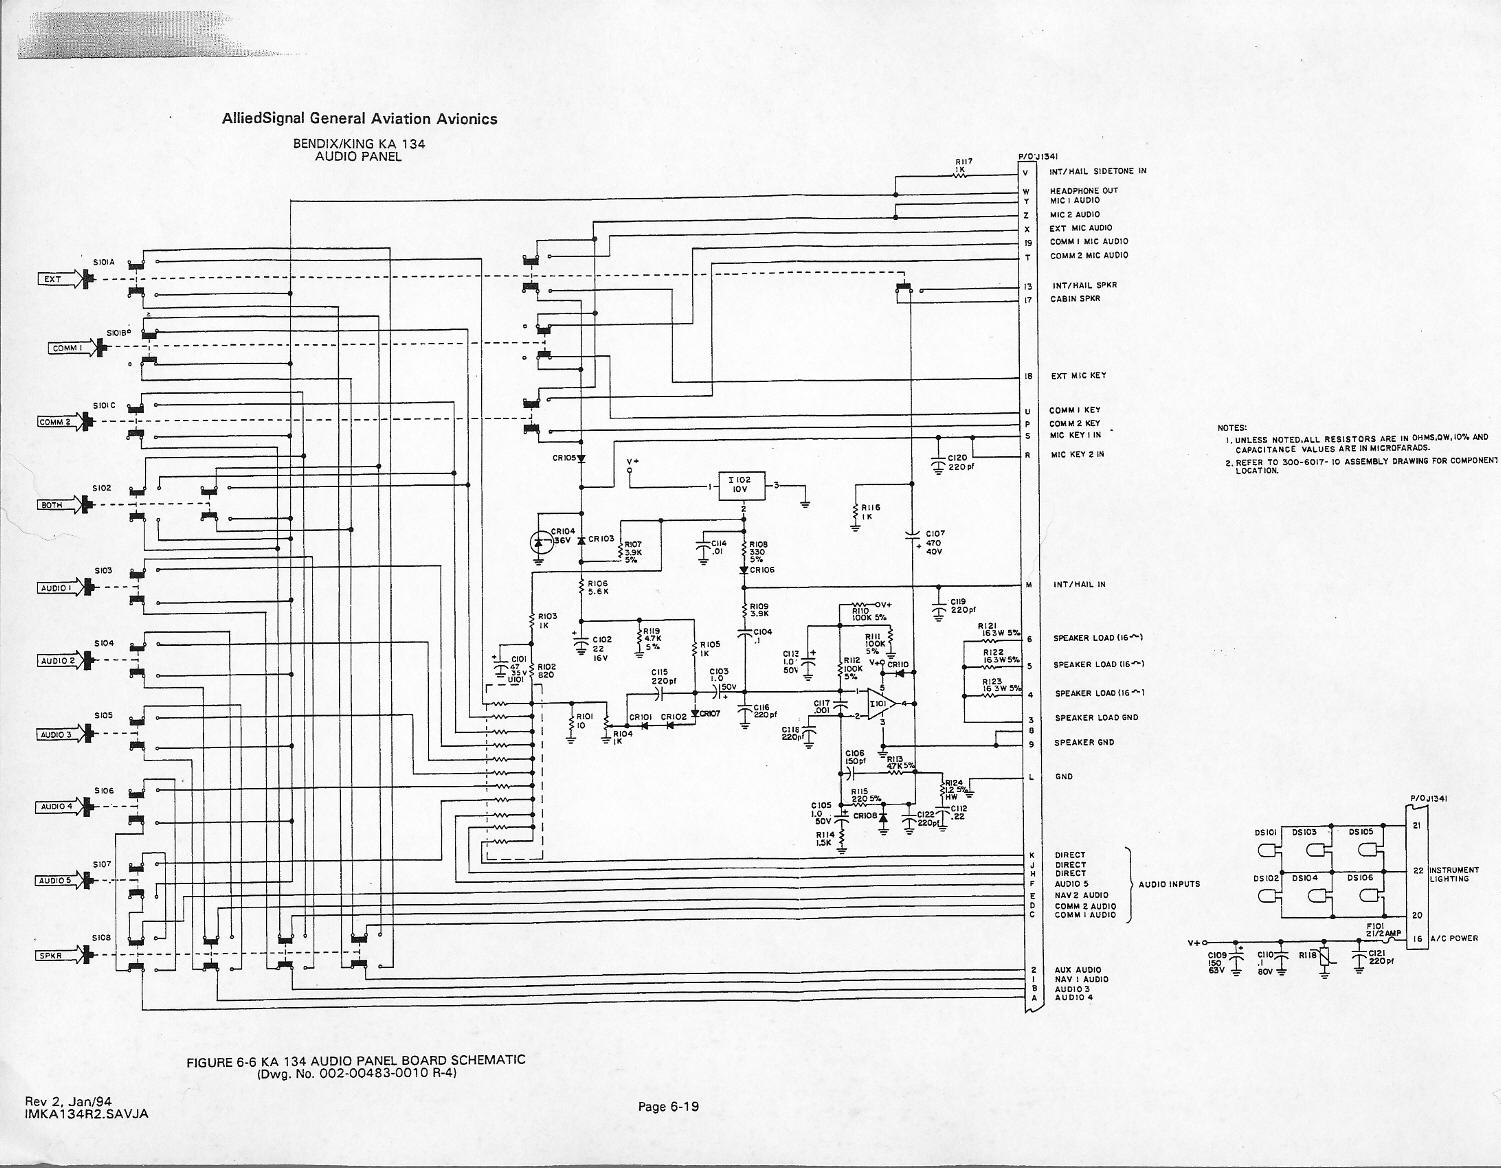 ka134_r4 first flight prep king ka 134 audio panel wiring diagram at bayanpartner.co